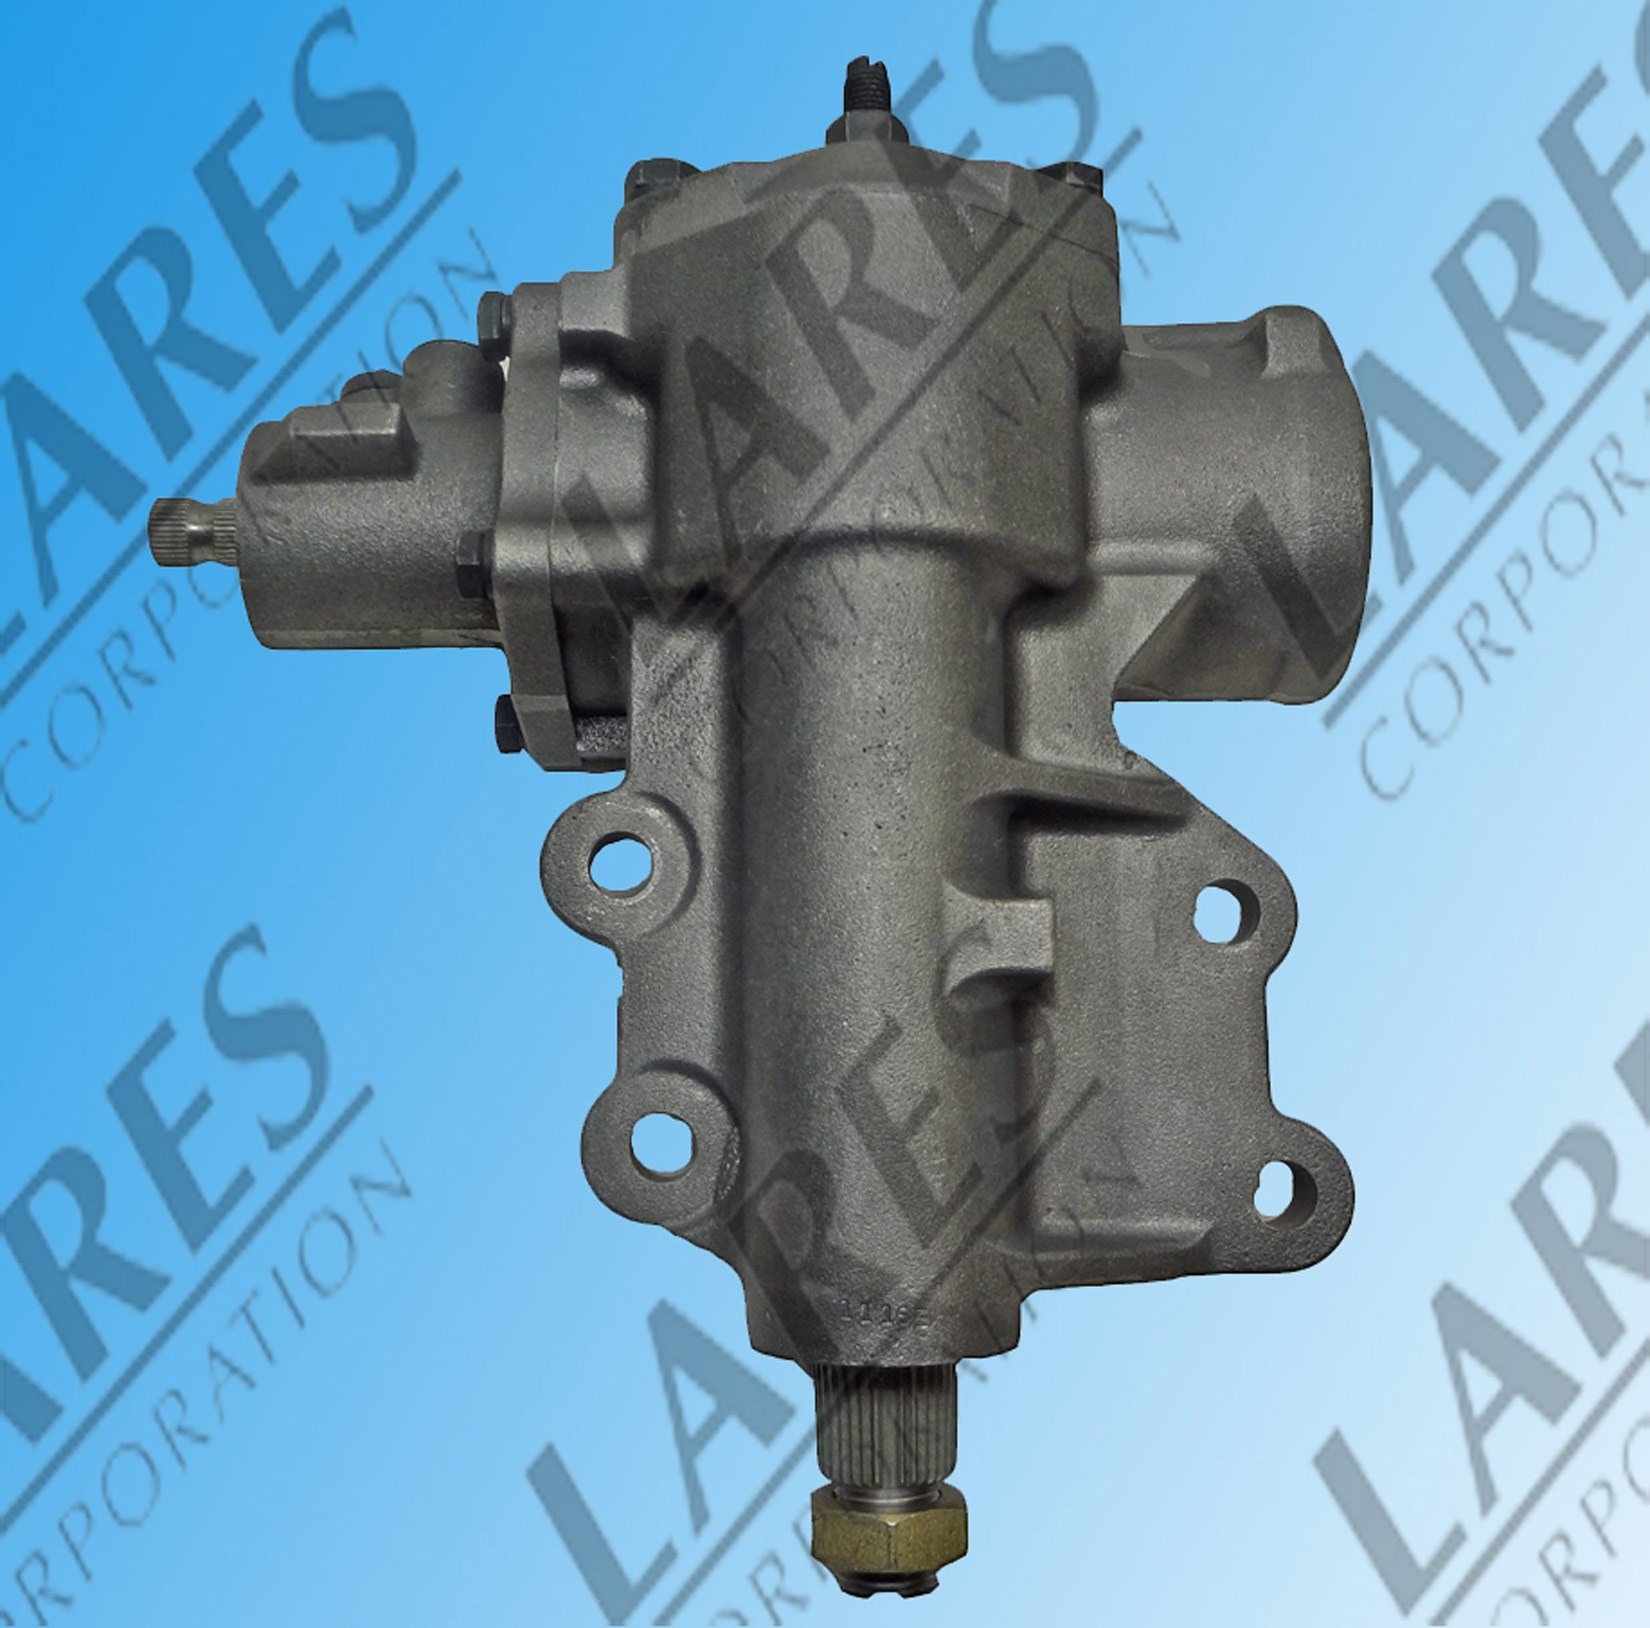 Power Steering Gear, Part No. 11148-a